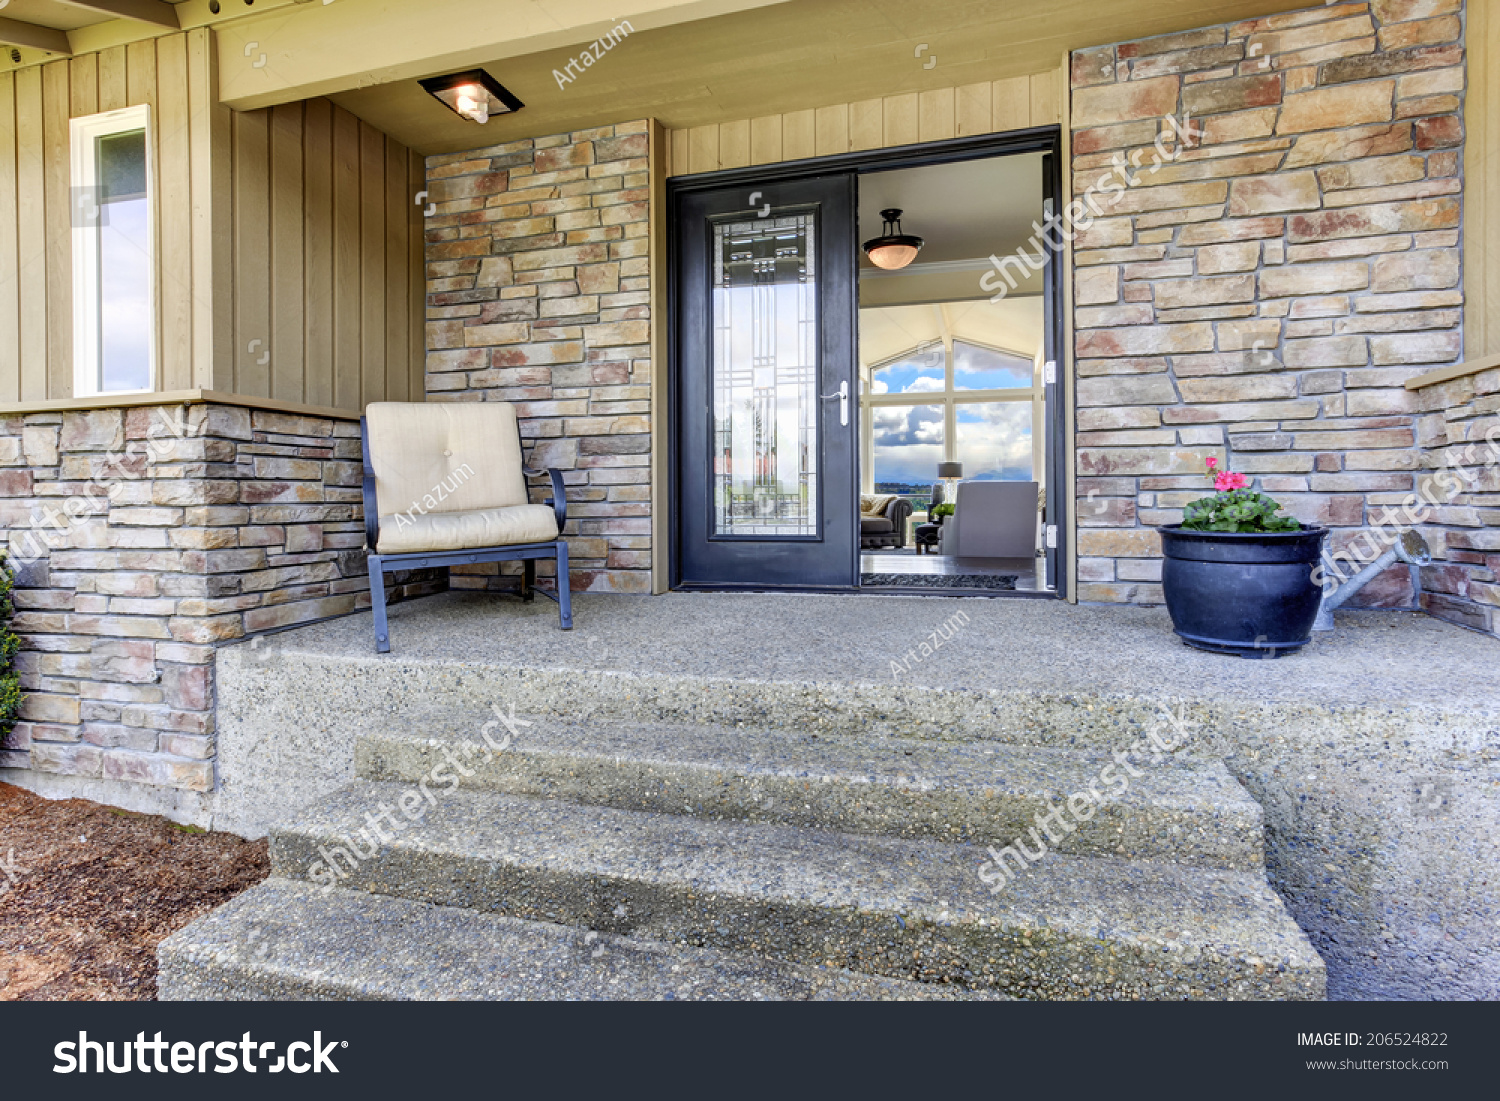 View House Entrance Porch Stone Wall Stock Photo 206524822 ...